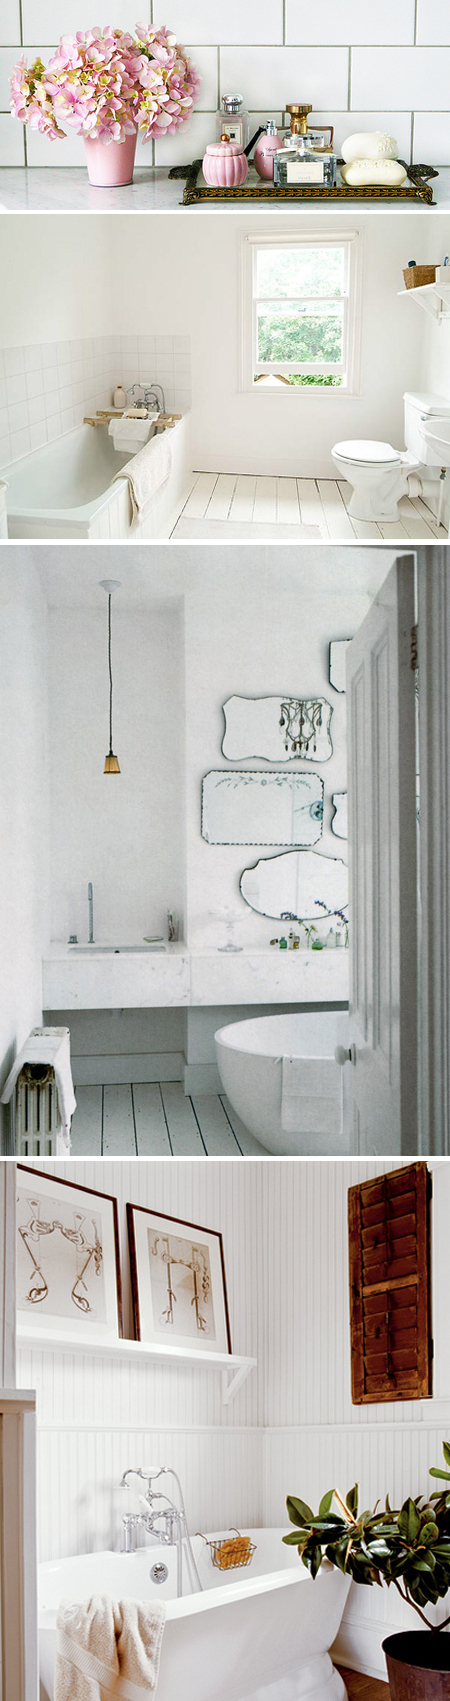 bathroomideas1